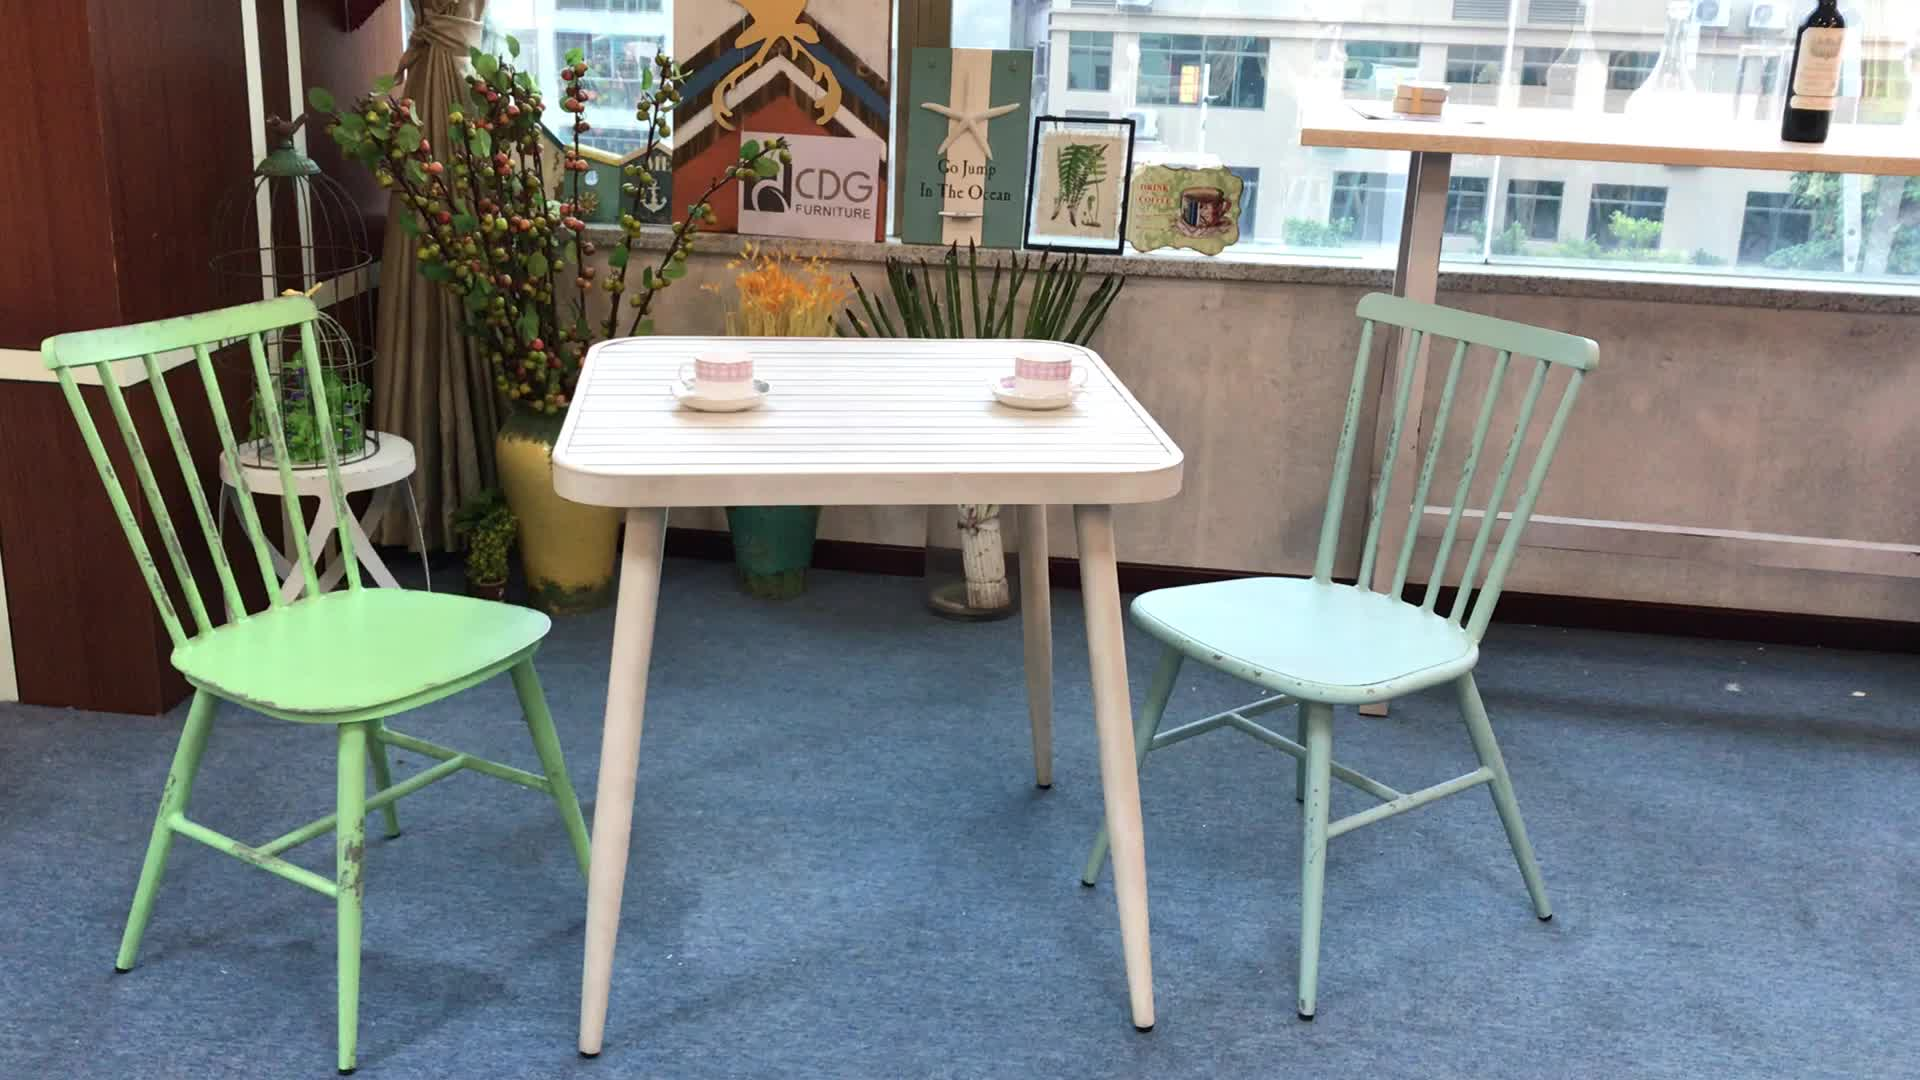 Vintage stainless steel dining table designs hand made coffee shop aluminium tables and chairs for garden